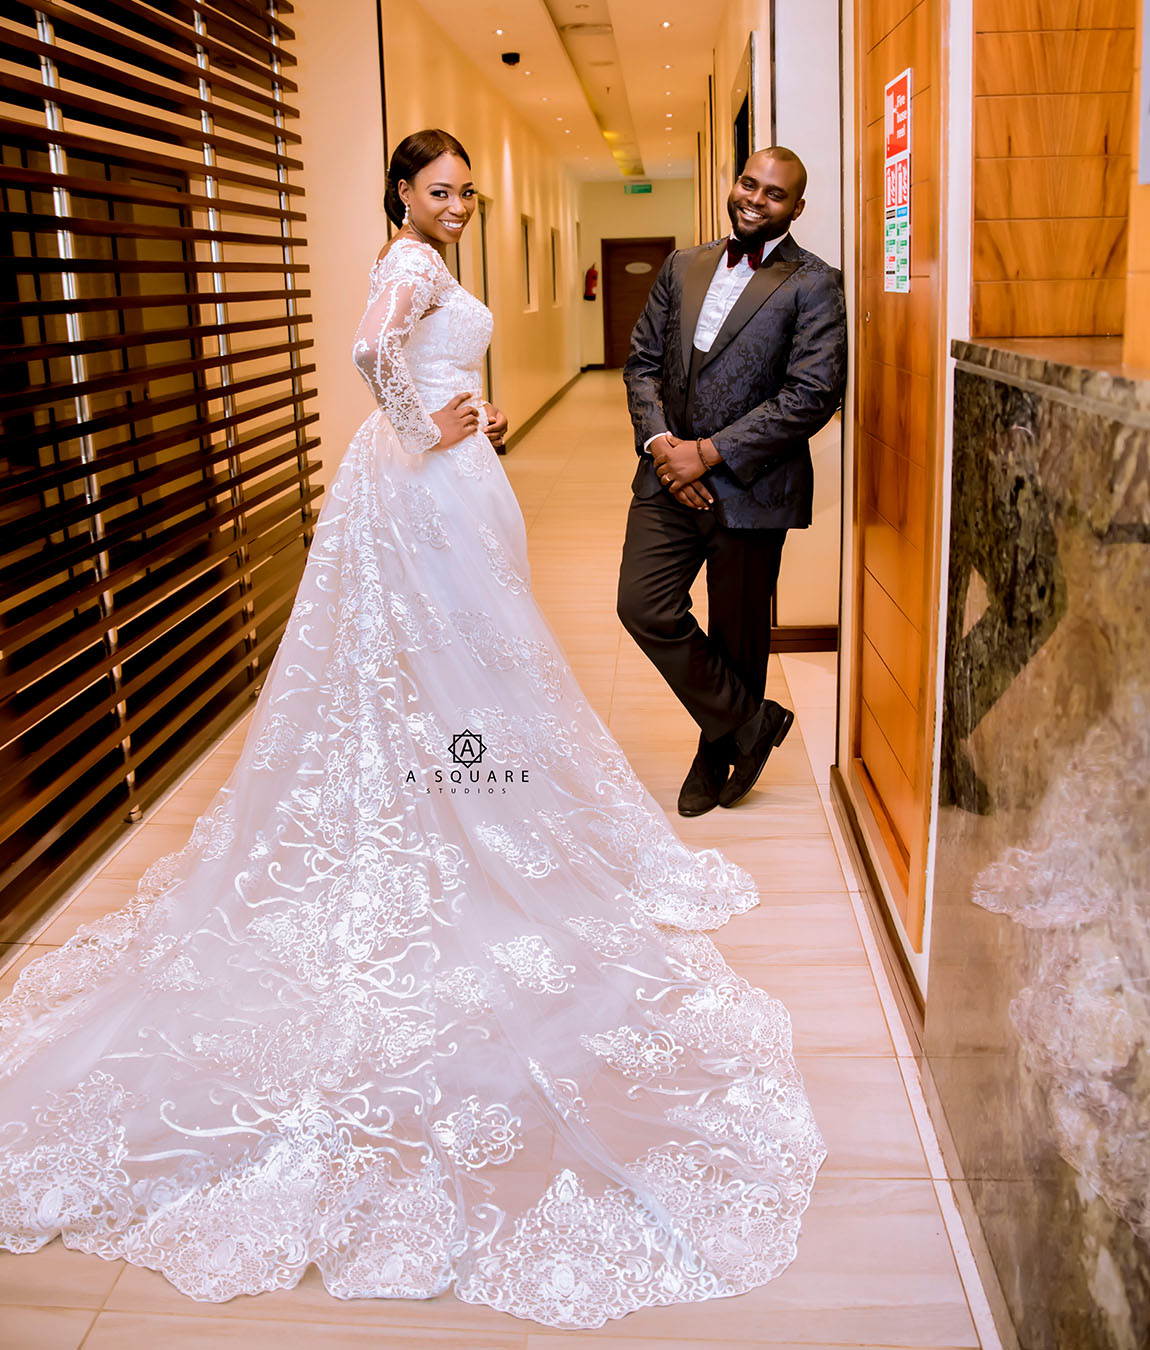 Off White Wedding Gown Meaning: White Wedding Album Of The Former Head Of Civil Service